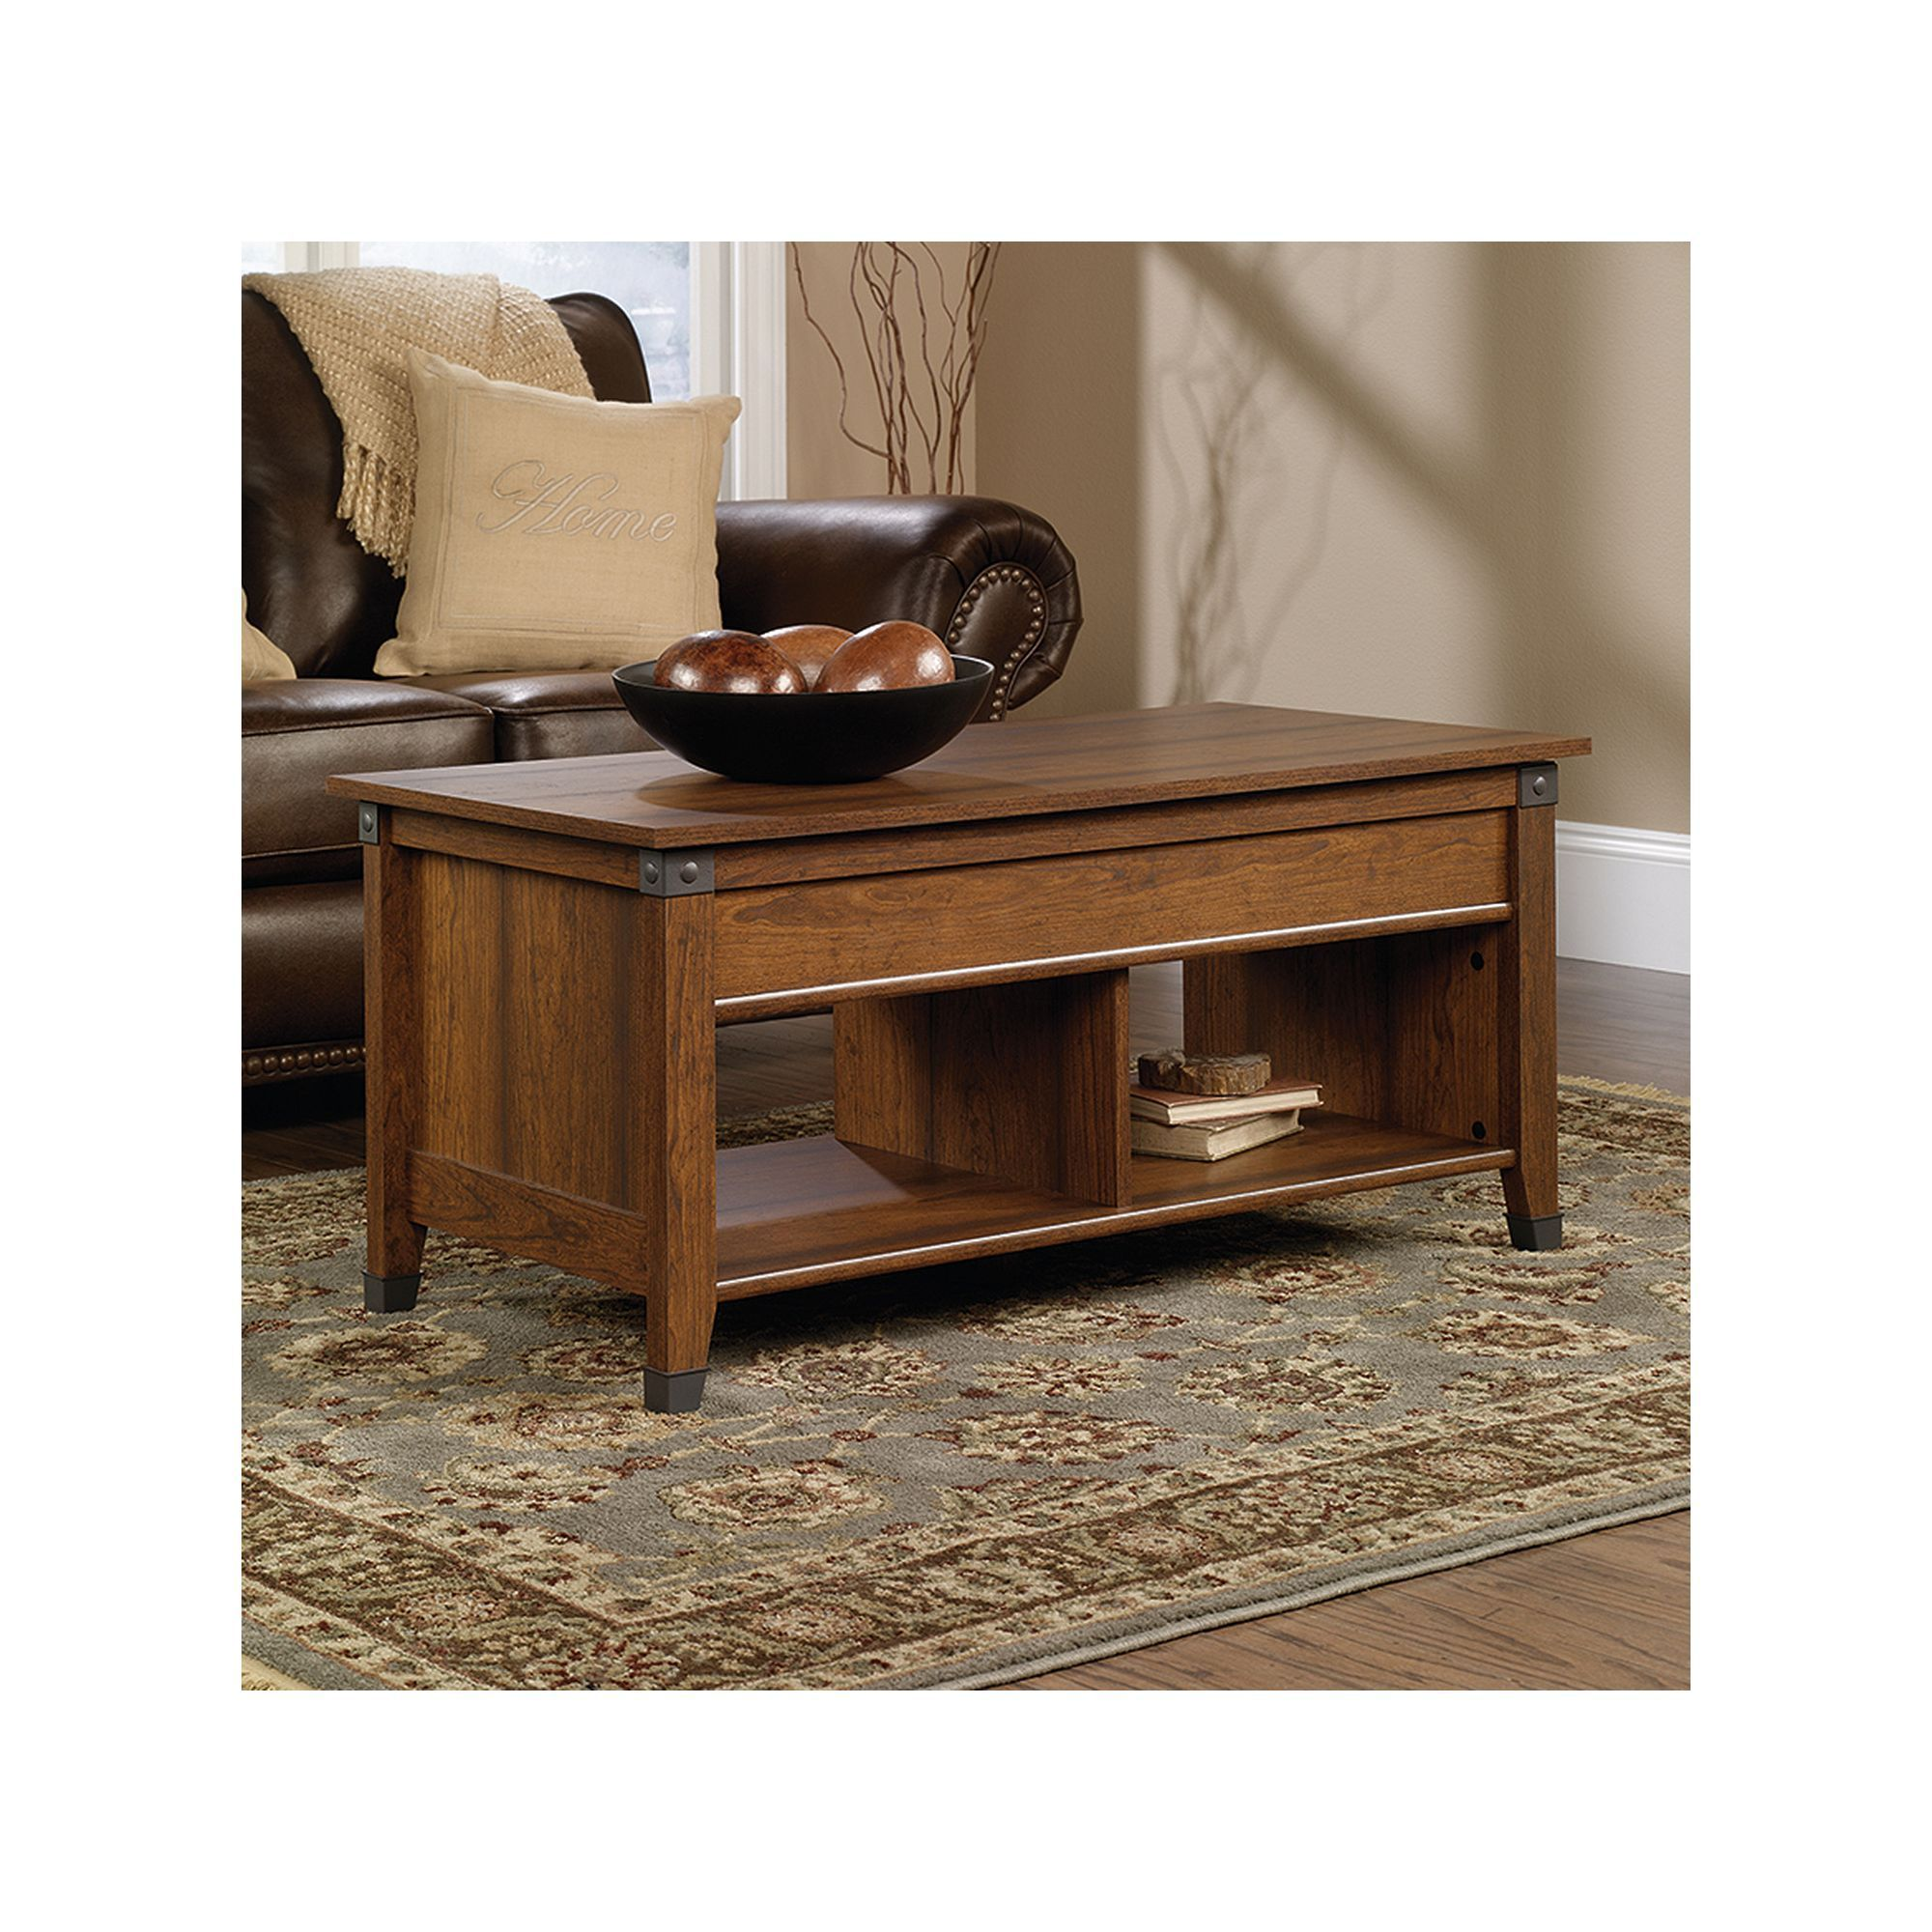 Sauder Carson Forge Collection Storage Coffee Table In 2021 Coffee Table Wood Cool Coffee Tables Coffee Table With Storage [ 2000 x 2000 Pixel ]